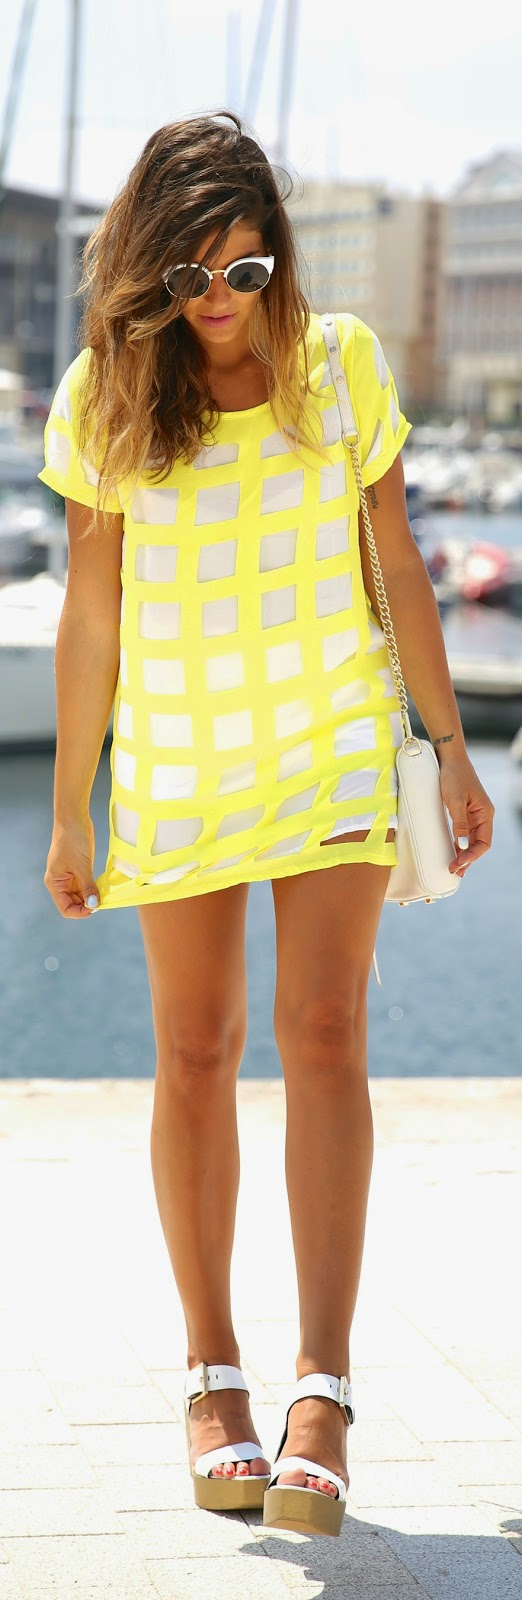 White and Yello Checked Style Dress with Chic Shoes | Summer Outfits